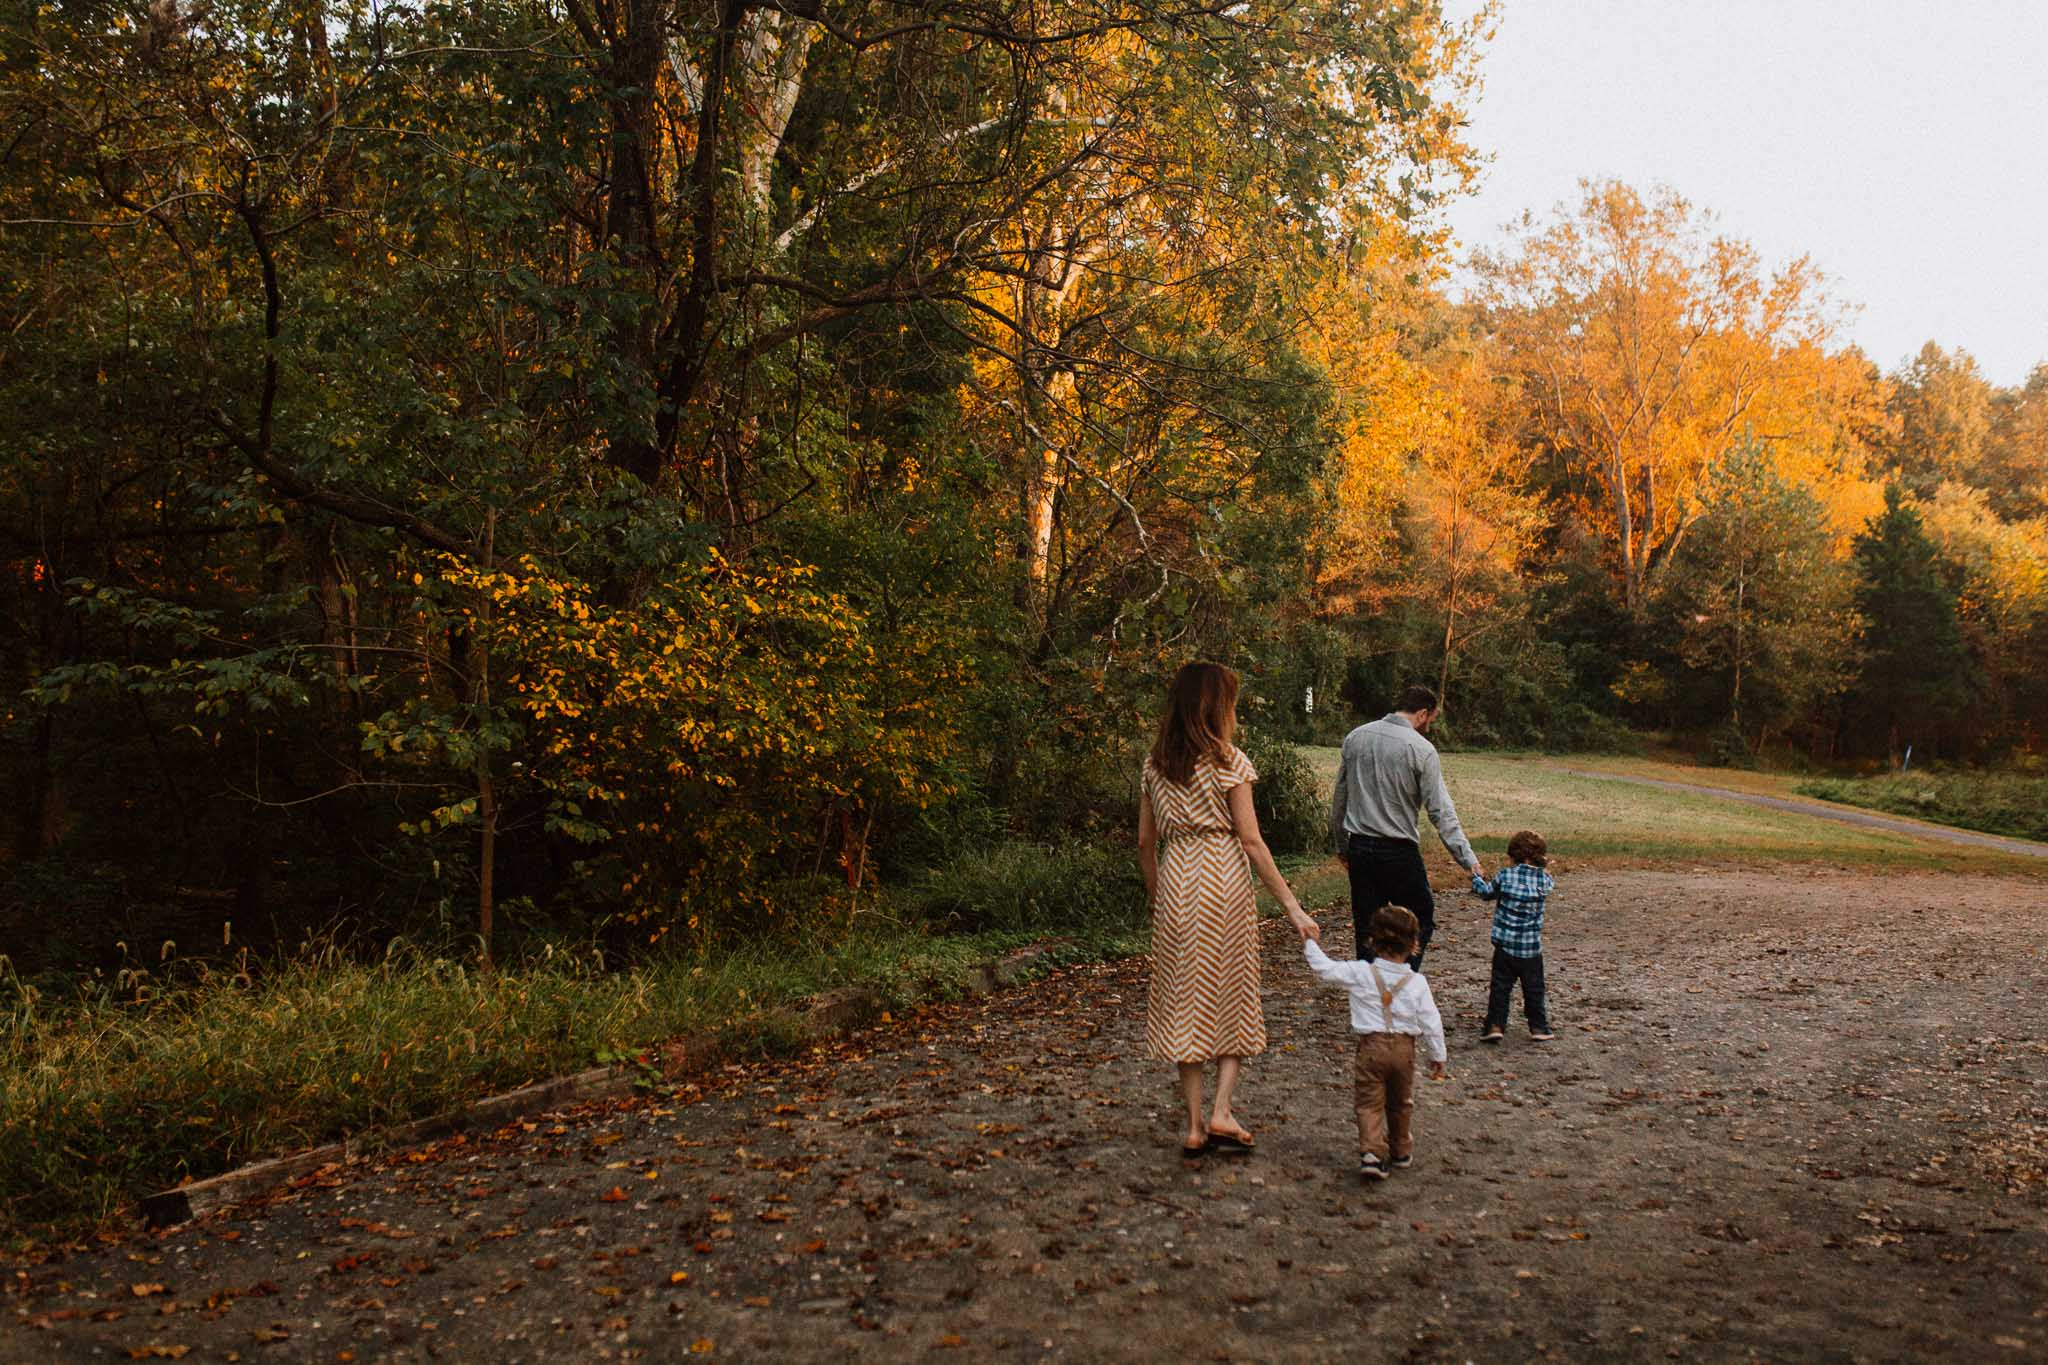 Sunset golden hour forest path Fall Autumn Cabell's Mill Ellanor C. Lawrence Chantilly Fairfax Virginia Lifestyle Documentary Family Marti Austin Photography